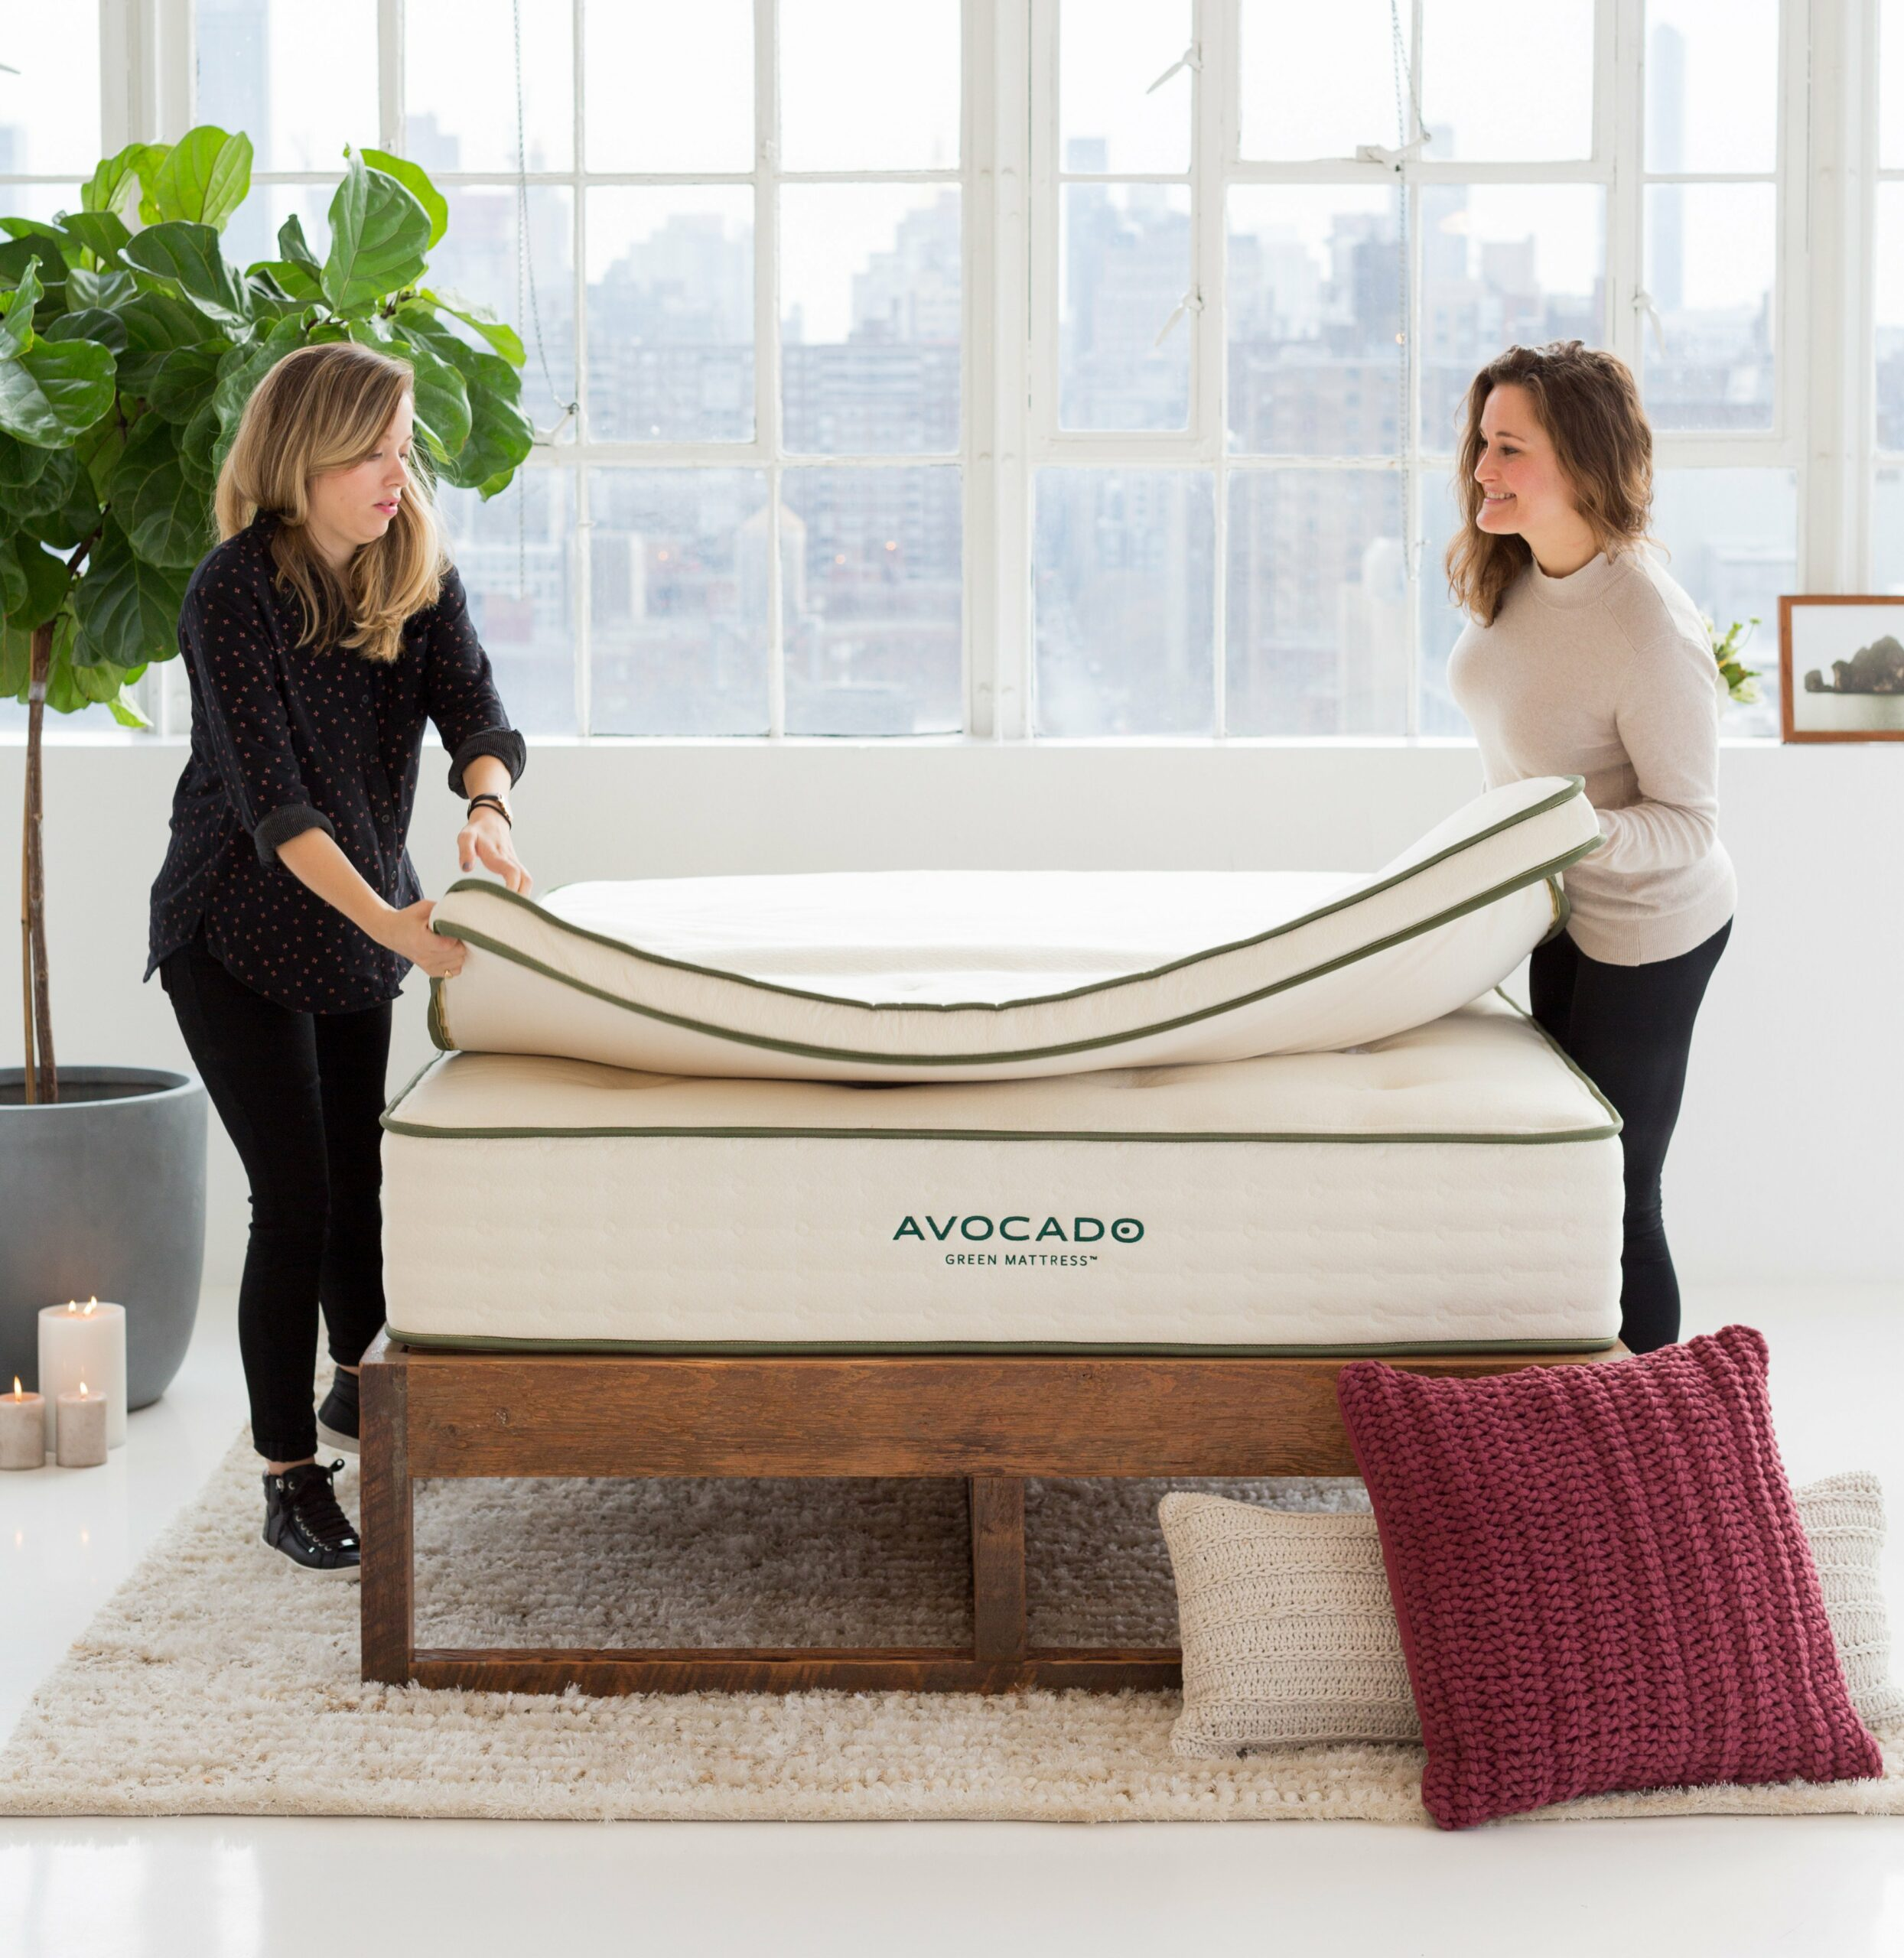 is the avocado mattress topper worth the price?